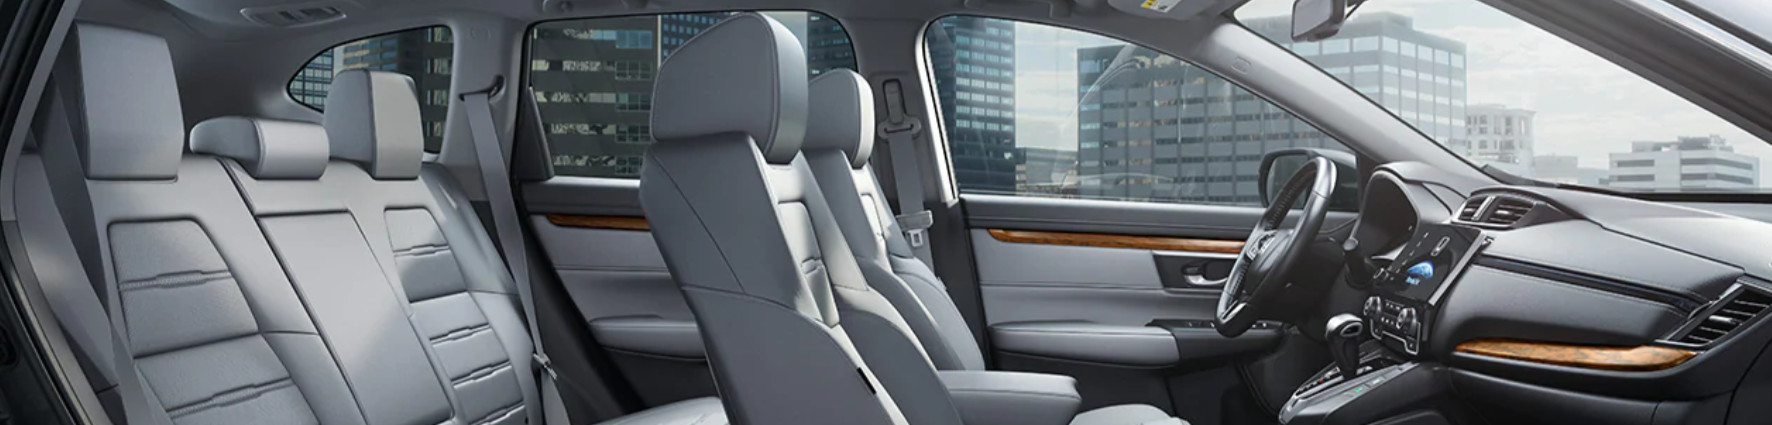 2020 CR-V Seating